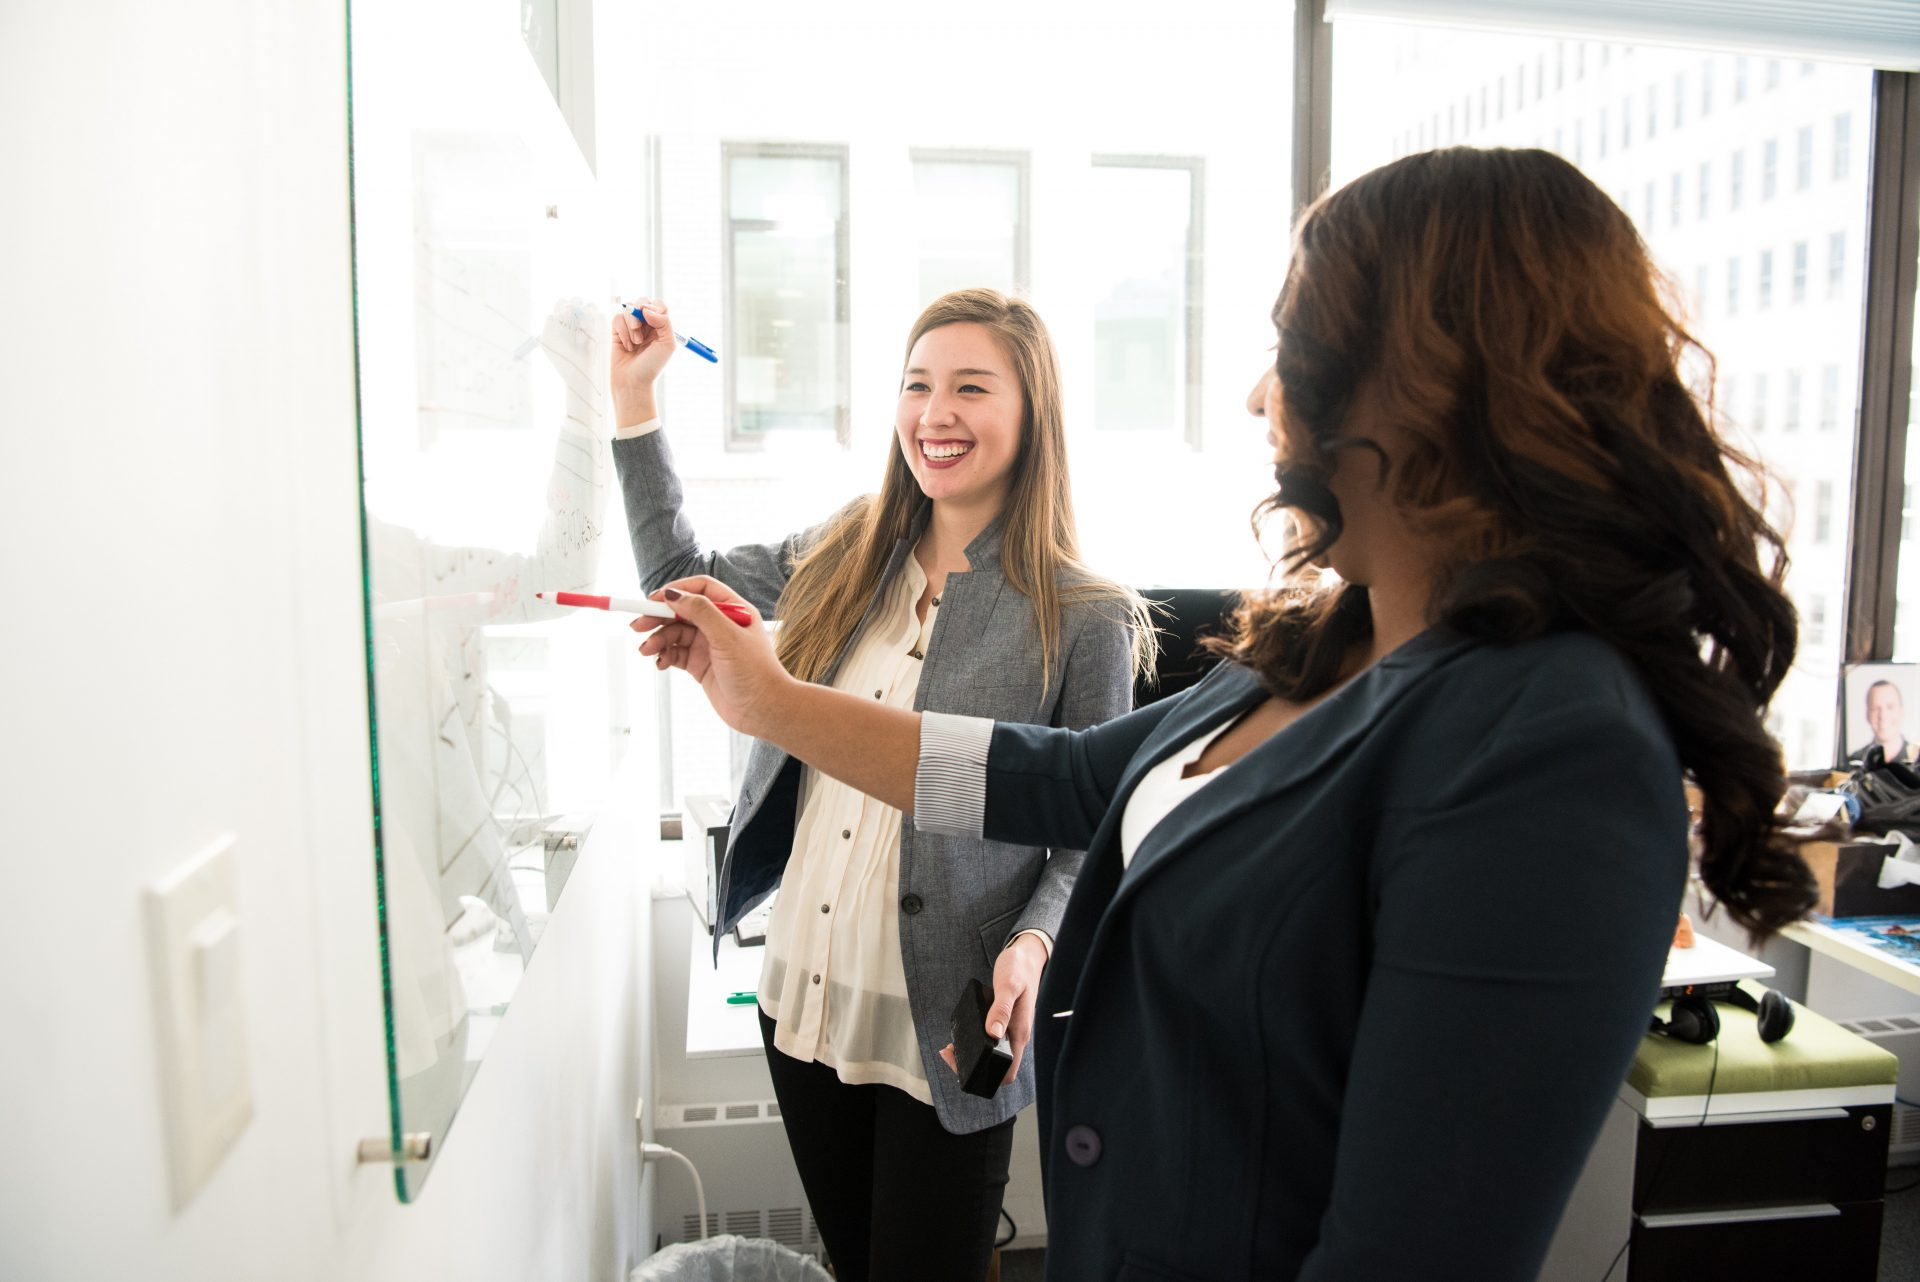 Two employees working at a dry erase board